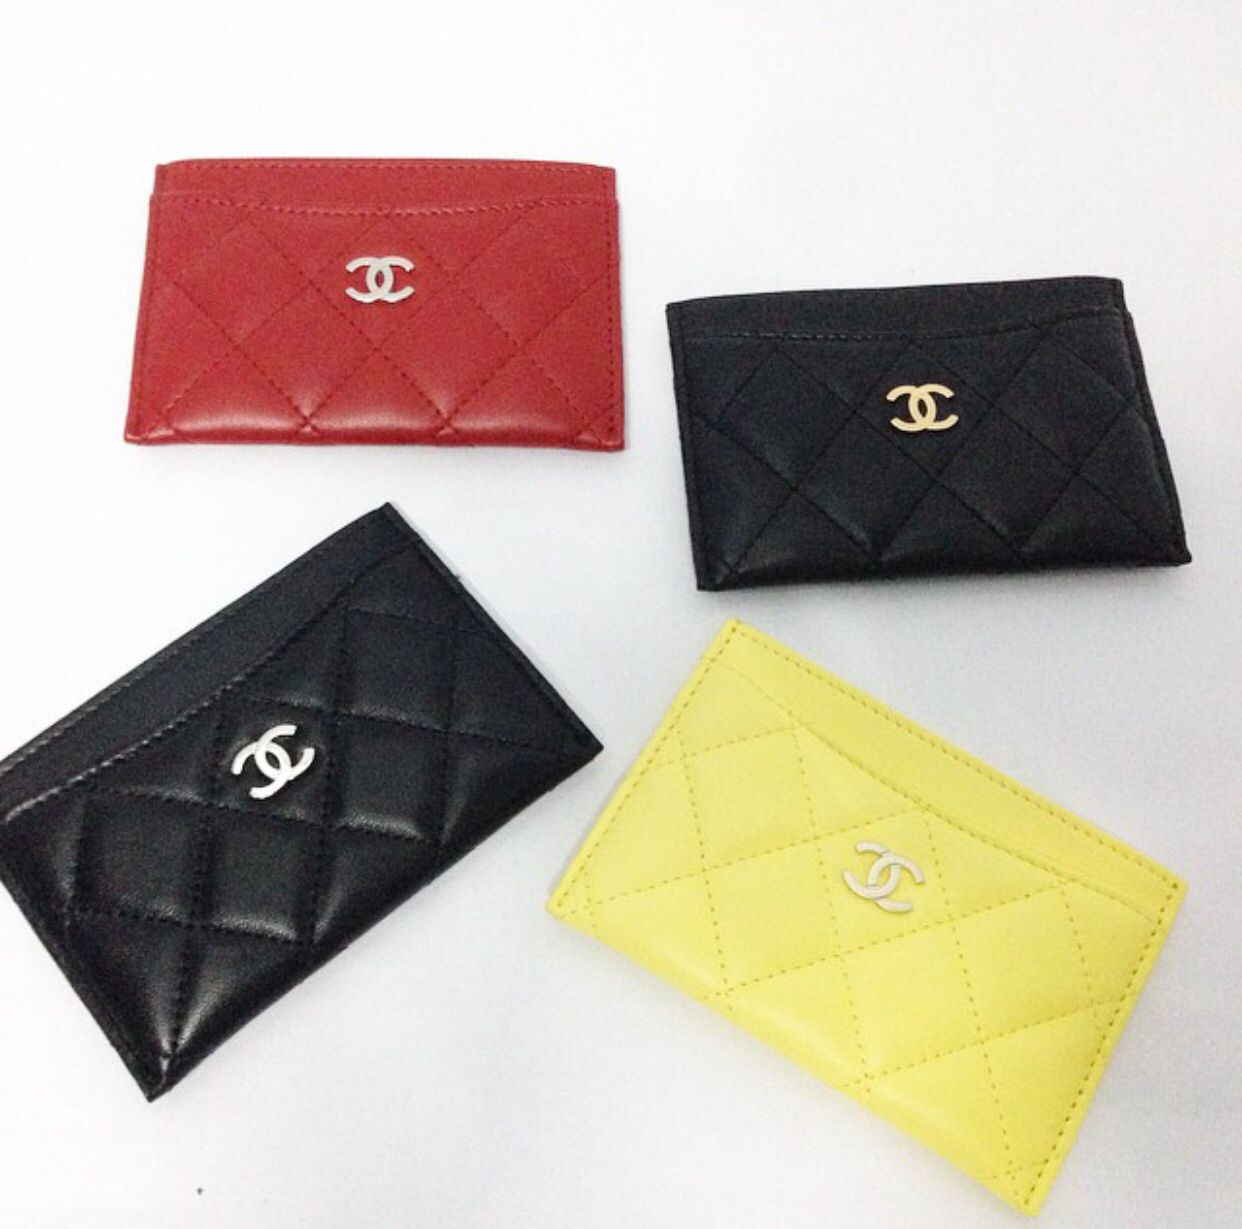 94e824b10365 Chanel card holder | Small Leather Goods ❤ | Chanel card holder ...